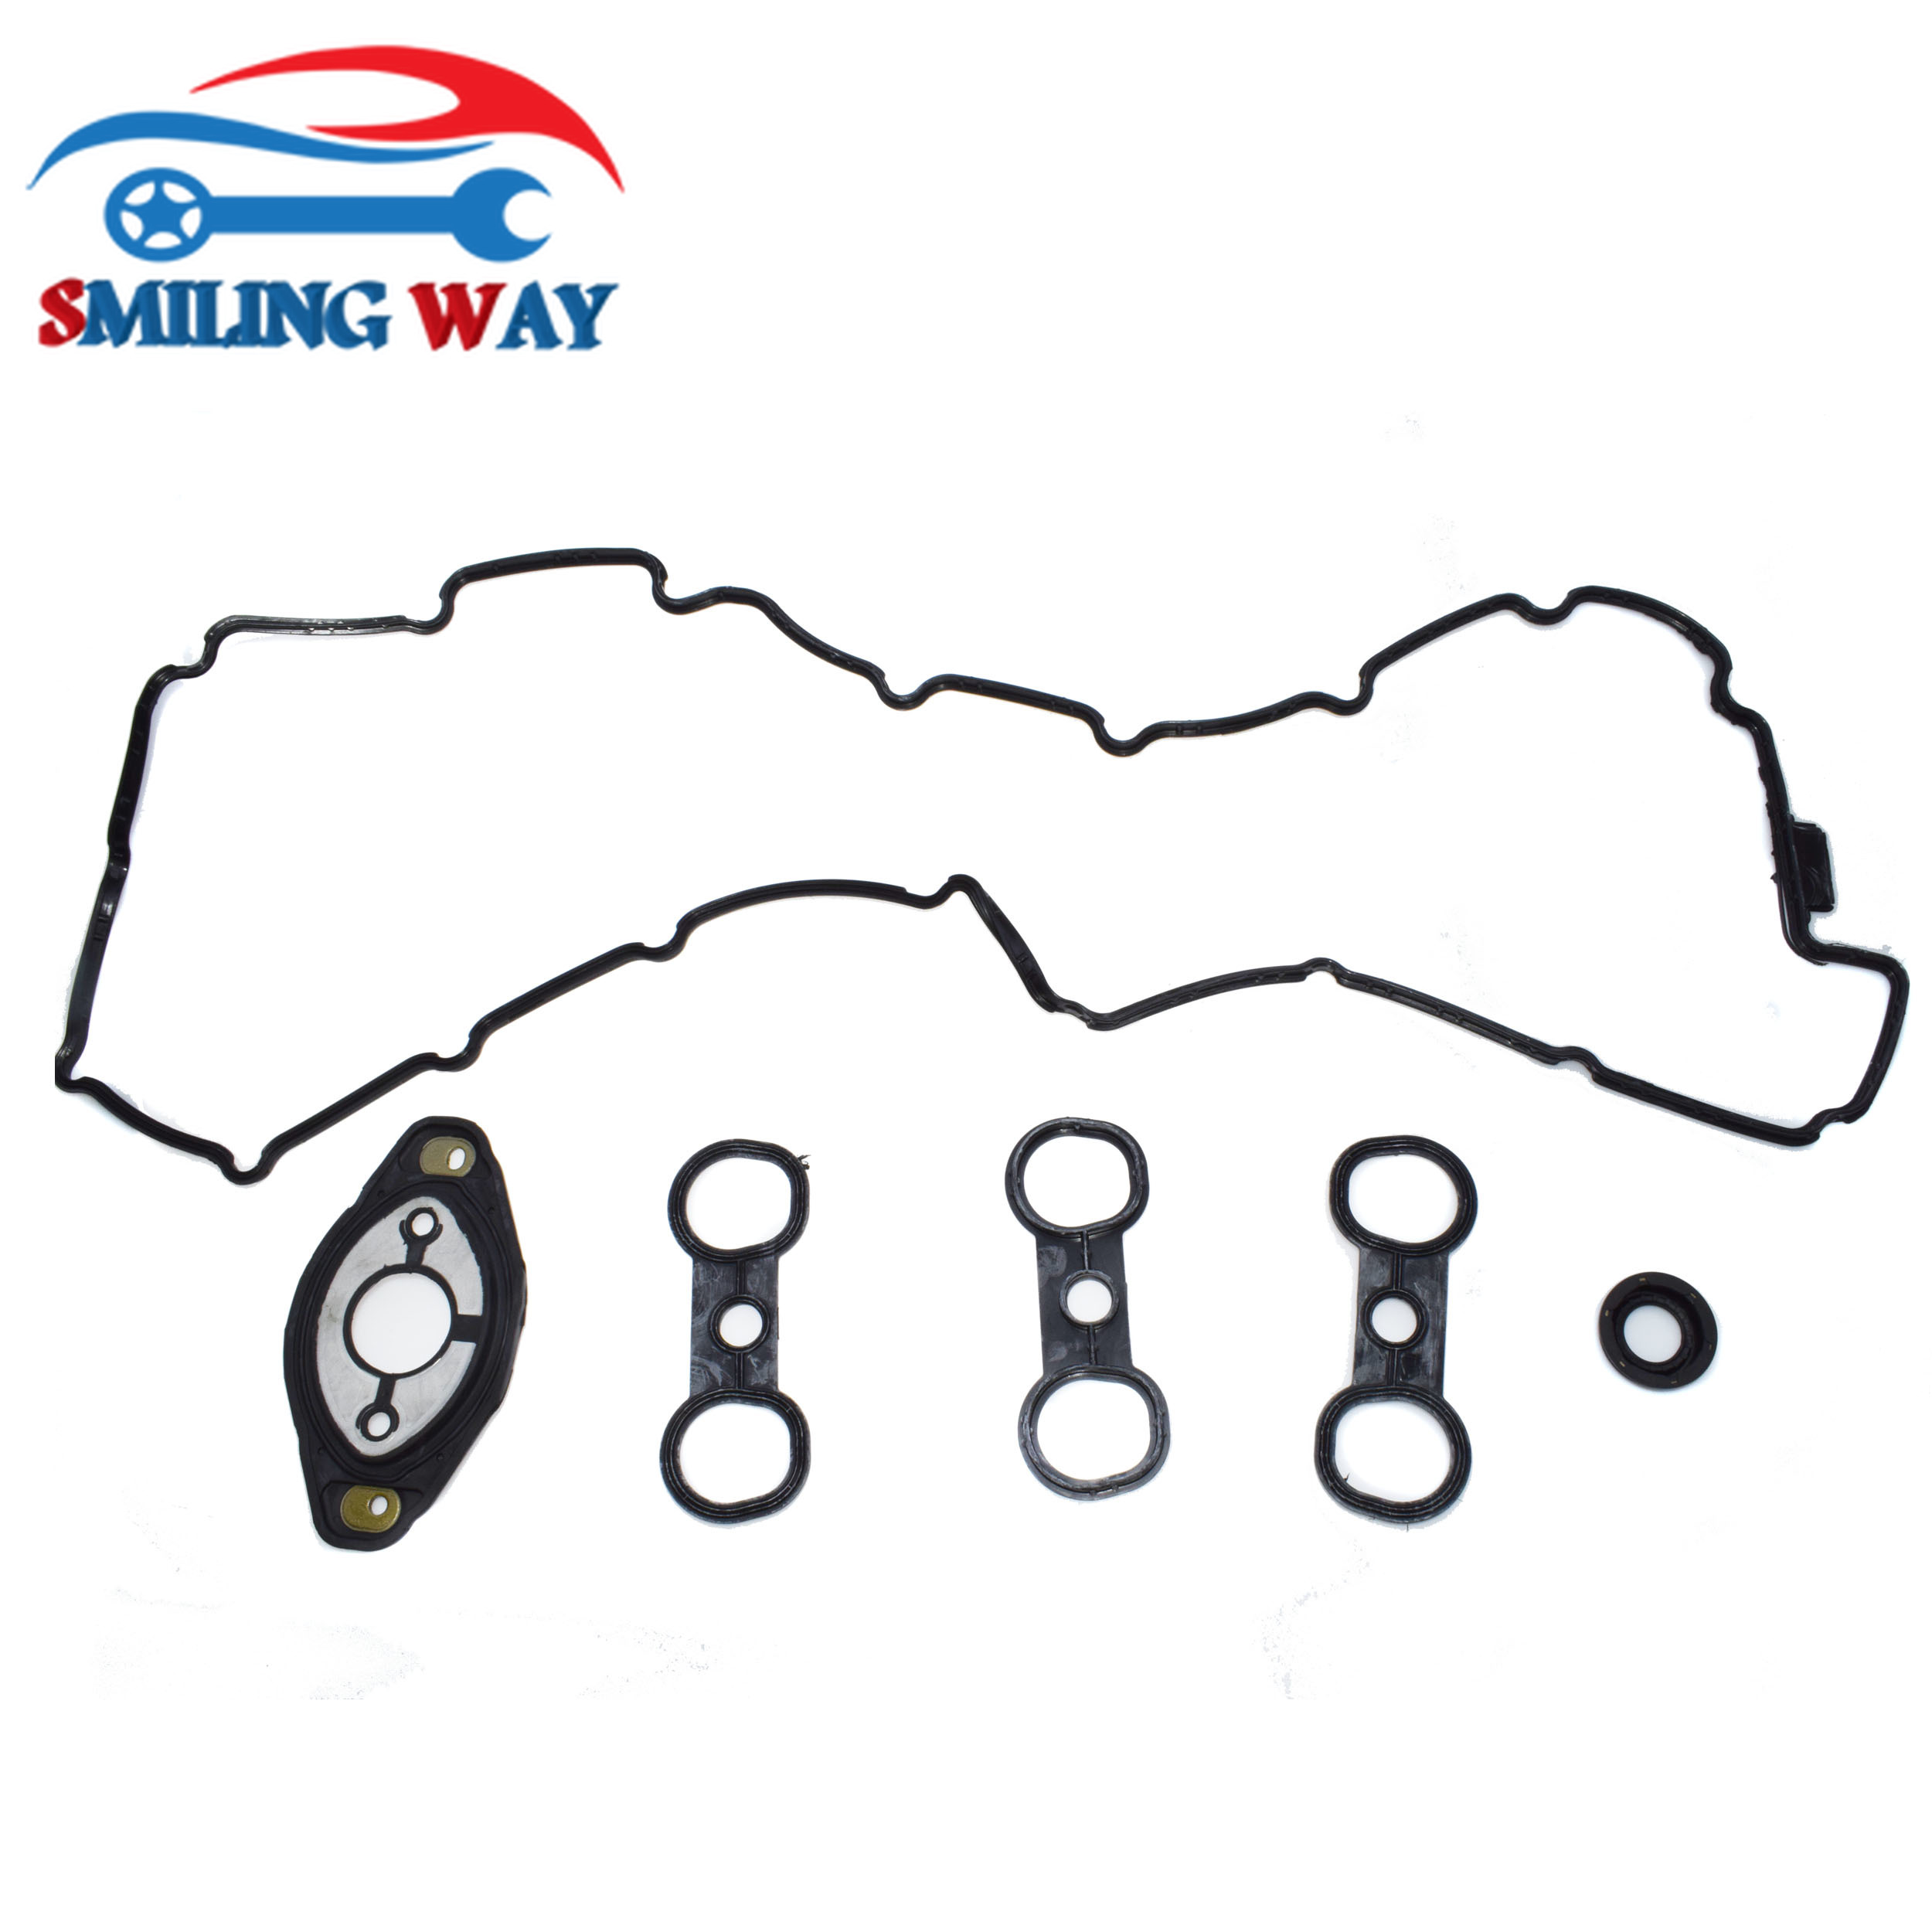 Smiling Way Valve Cover Gasket Amp Spark Plug Tube Seal For